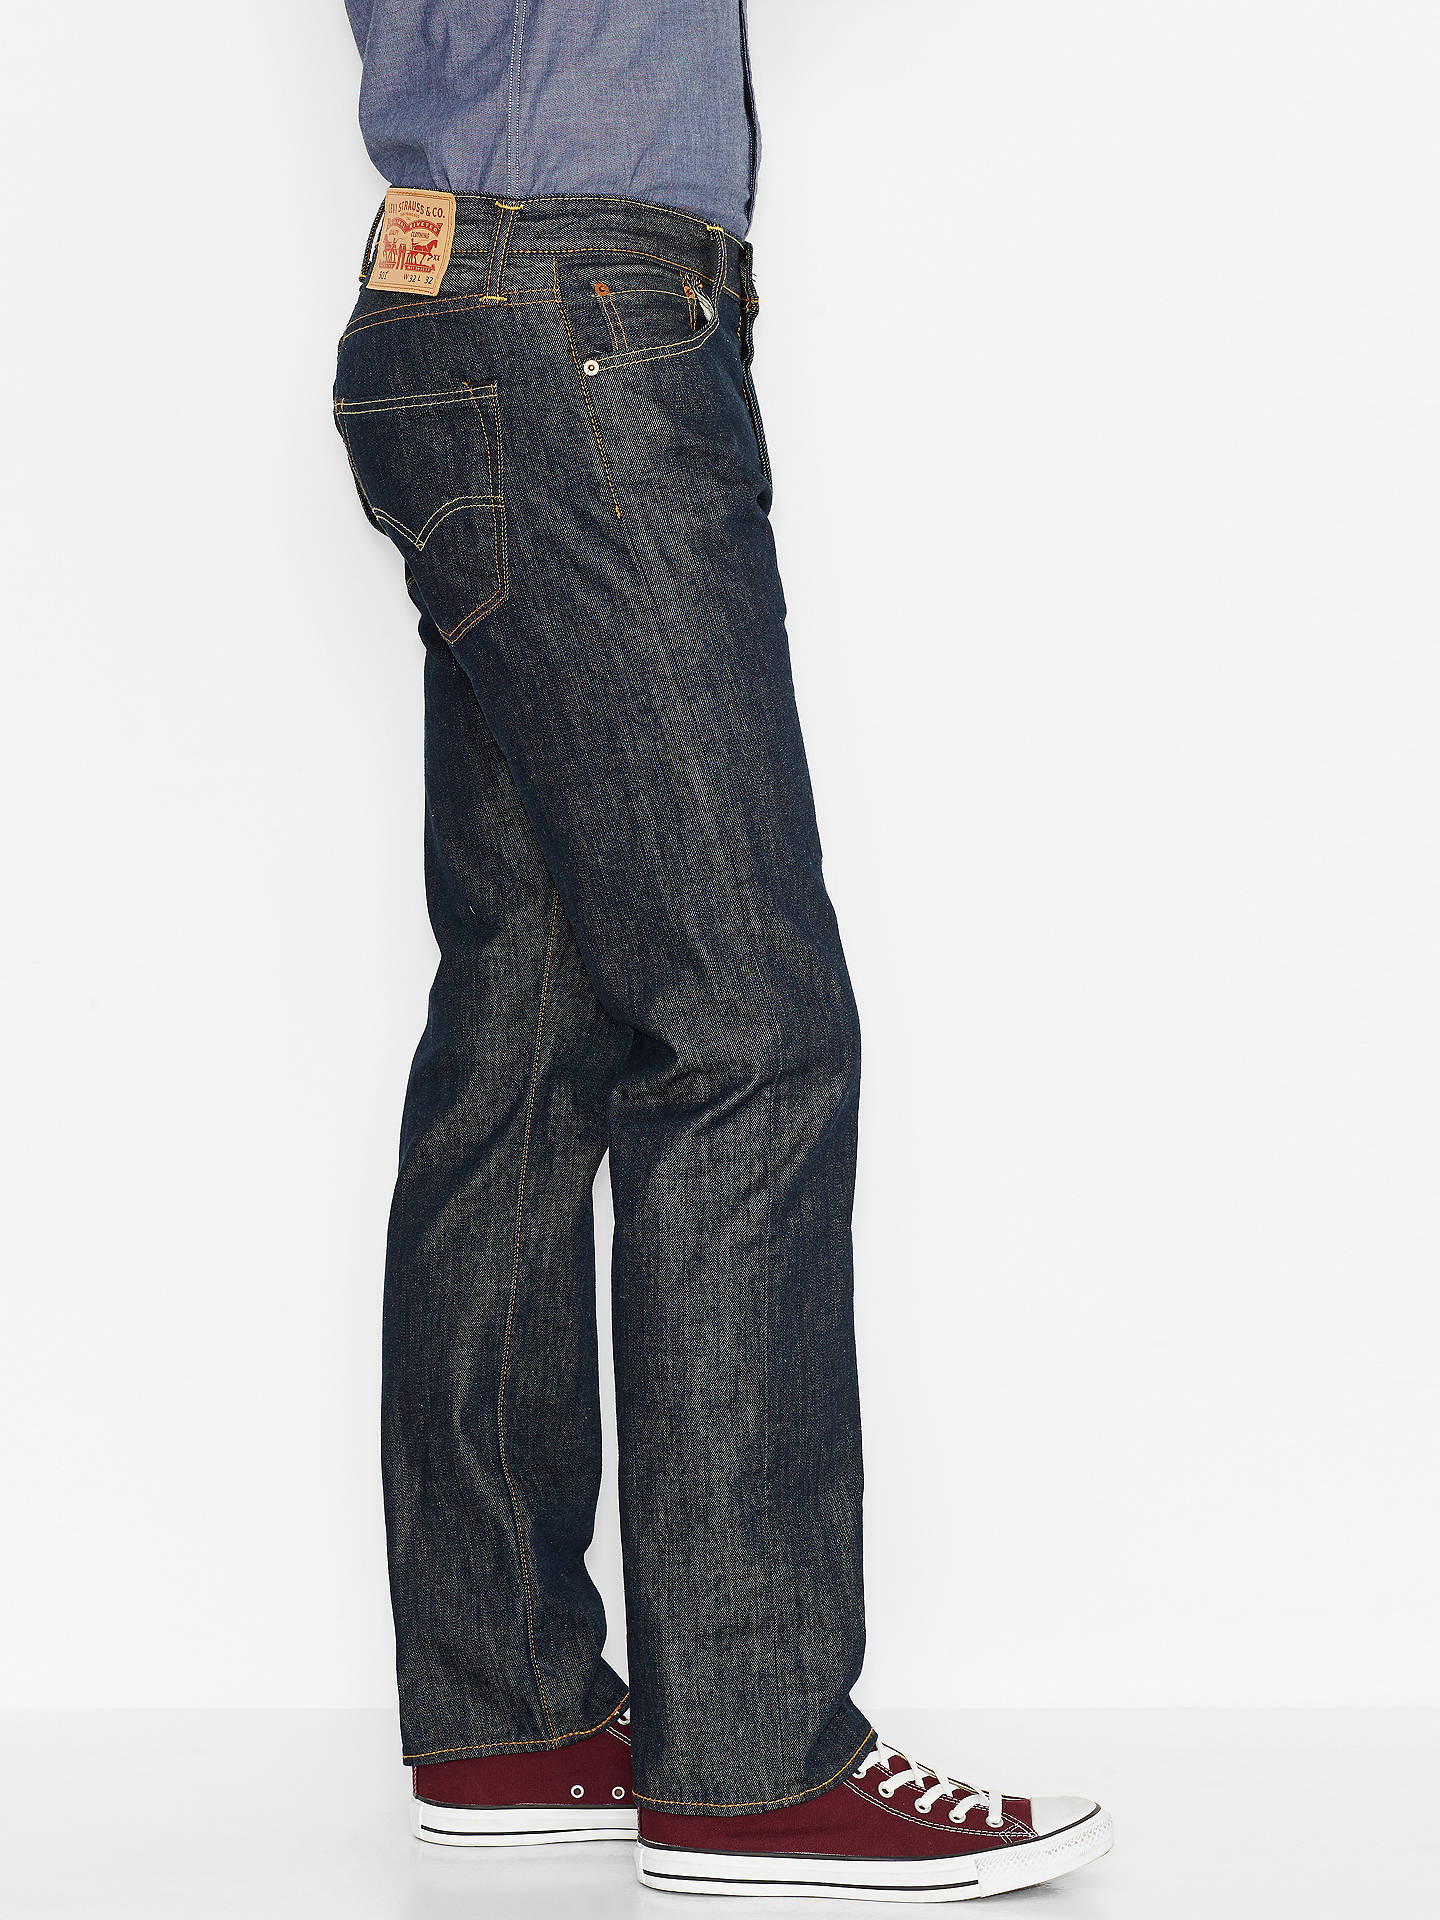 BuyLevi's 501 Original Straight Jeans, Marlon, 30S Online at johnlewis.com